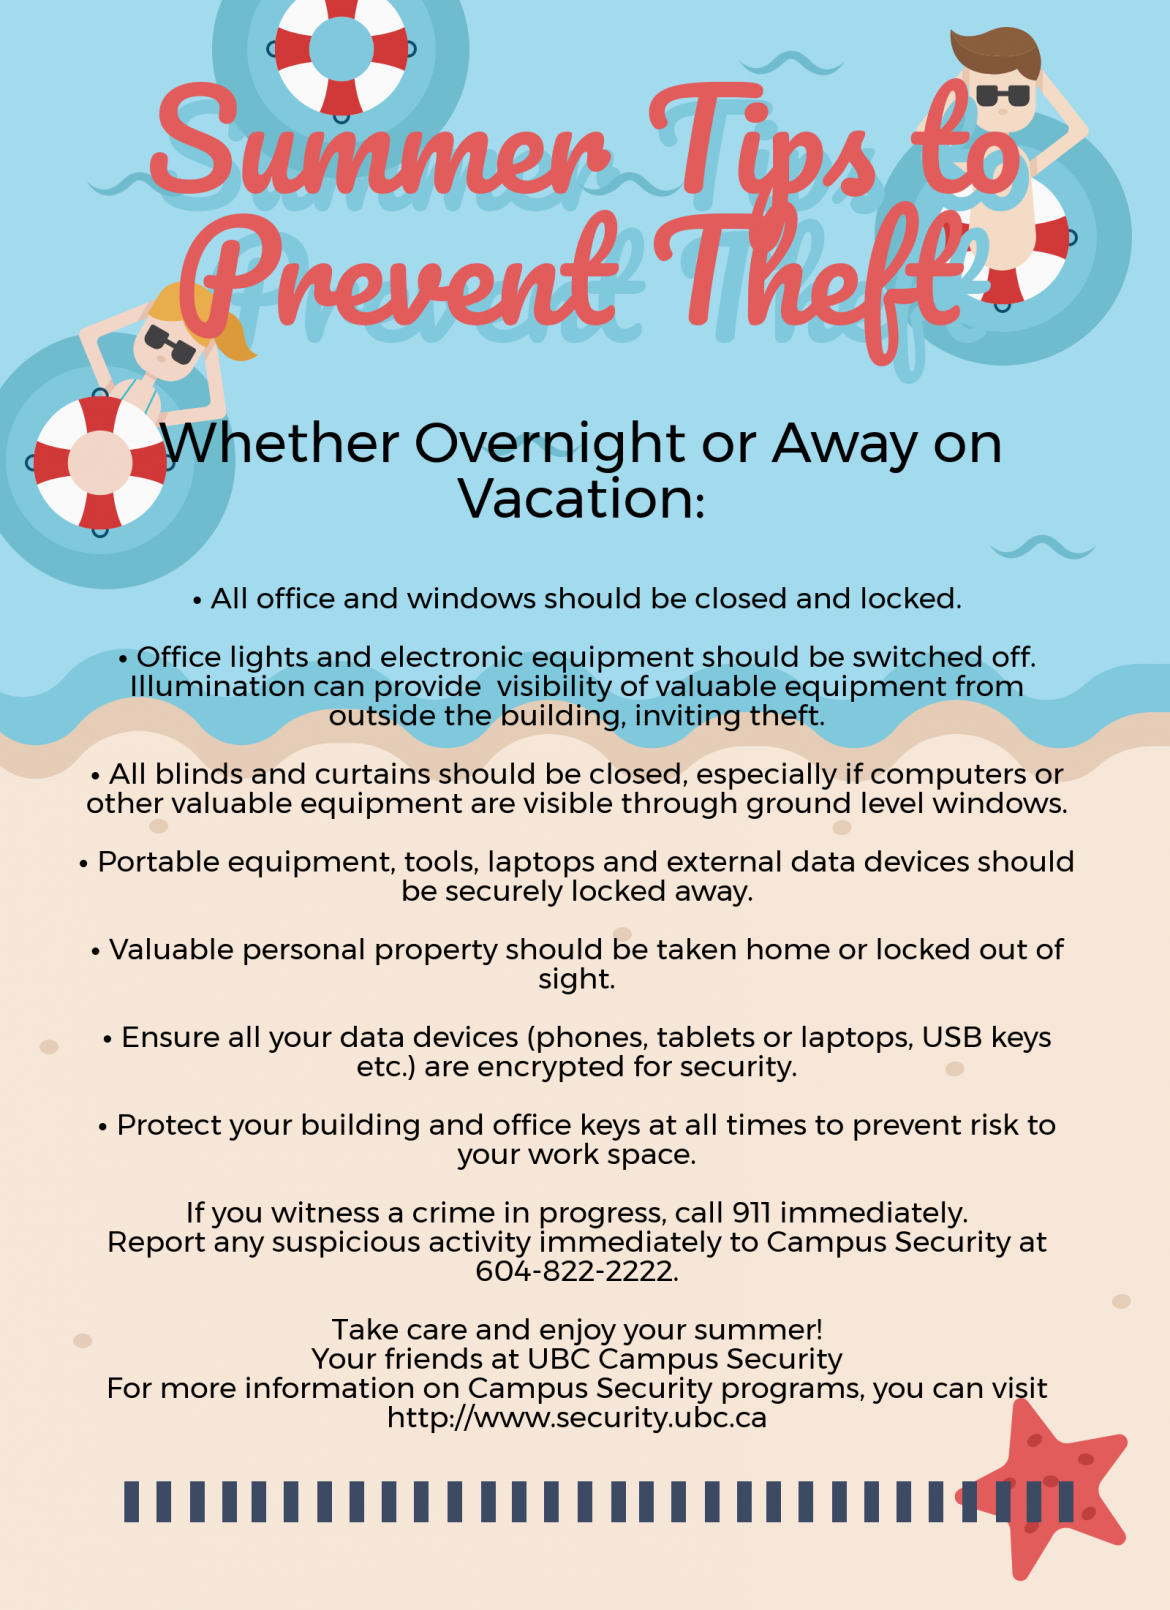 June Safety News: 1) Summer Crime Prevention Tips & 2) World